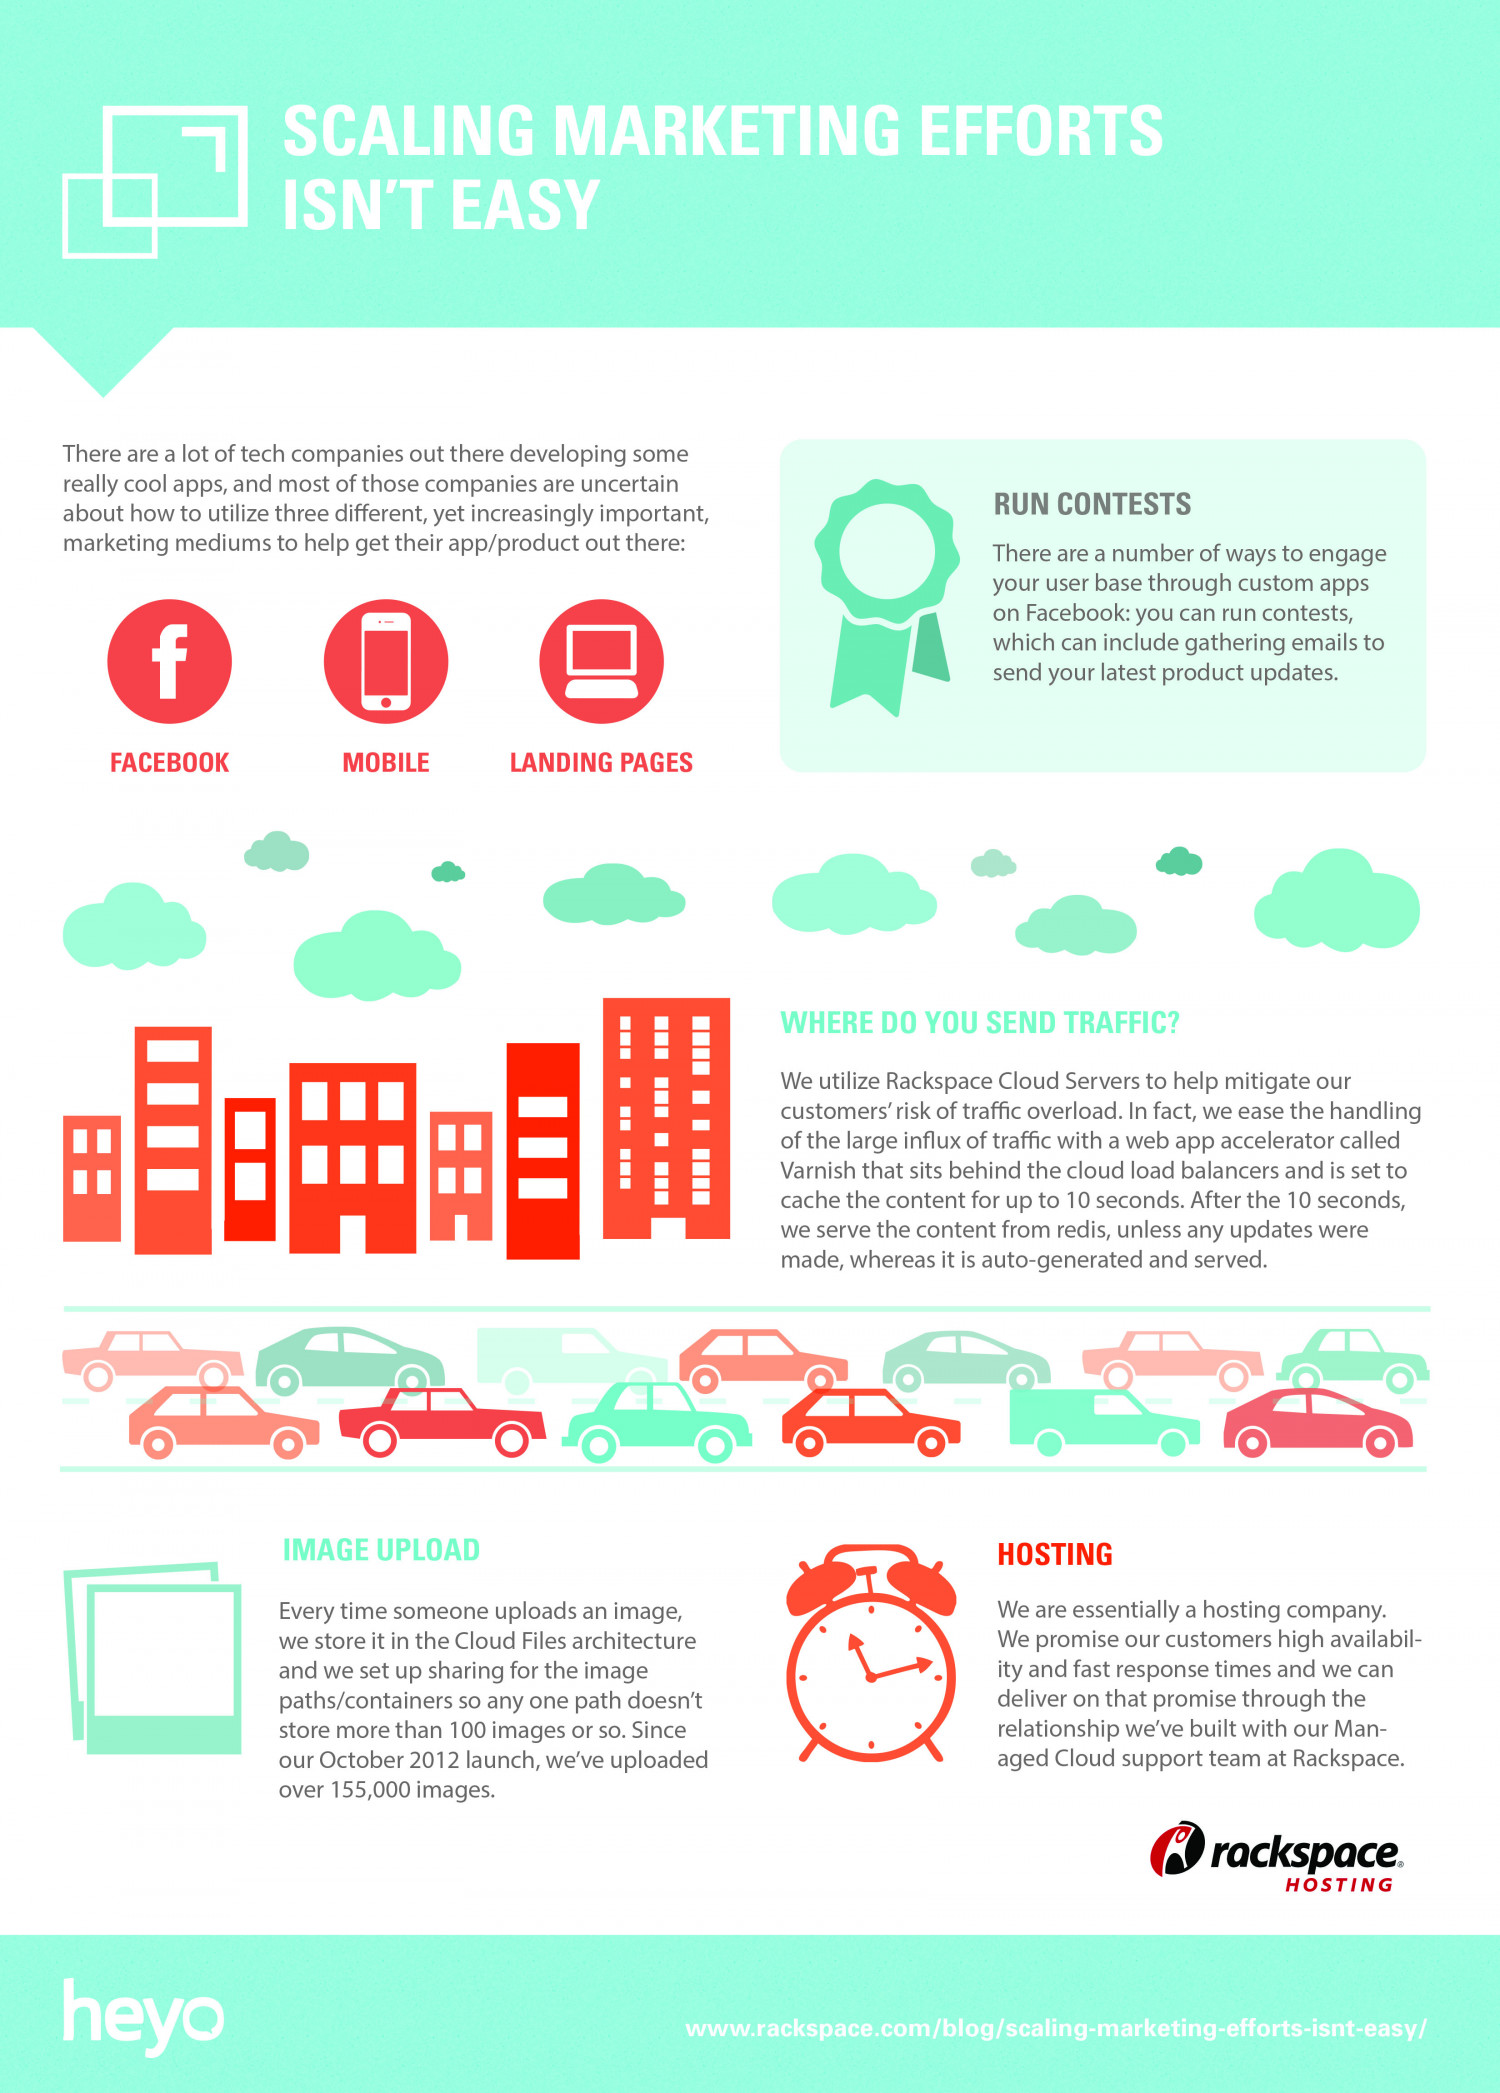 Scaling Marketing Efforts Isn't Easy Infographic